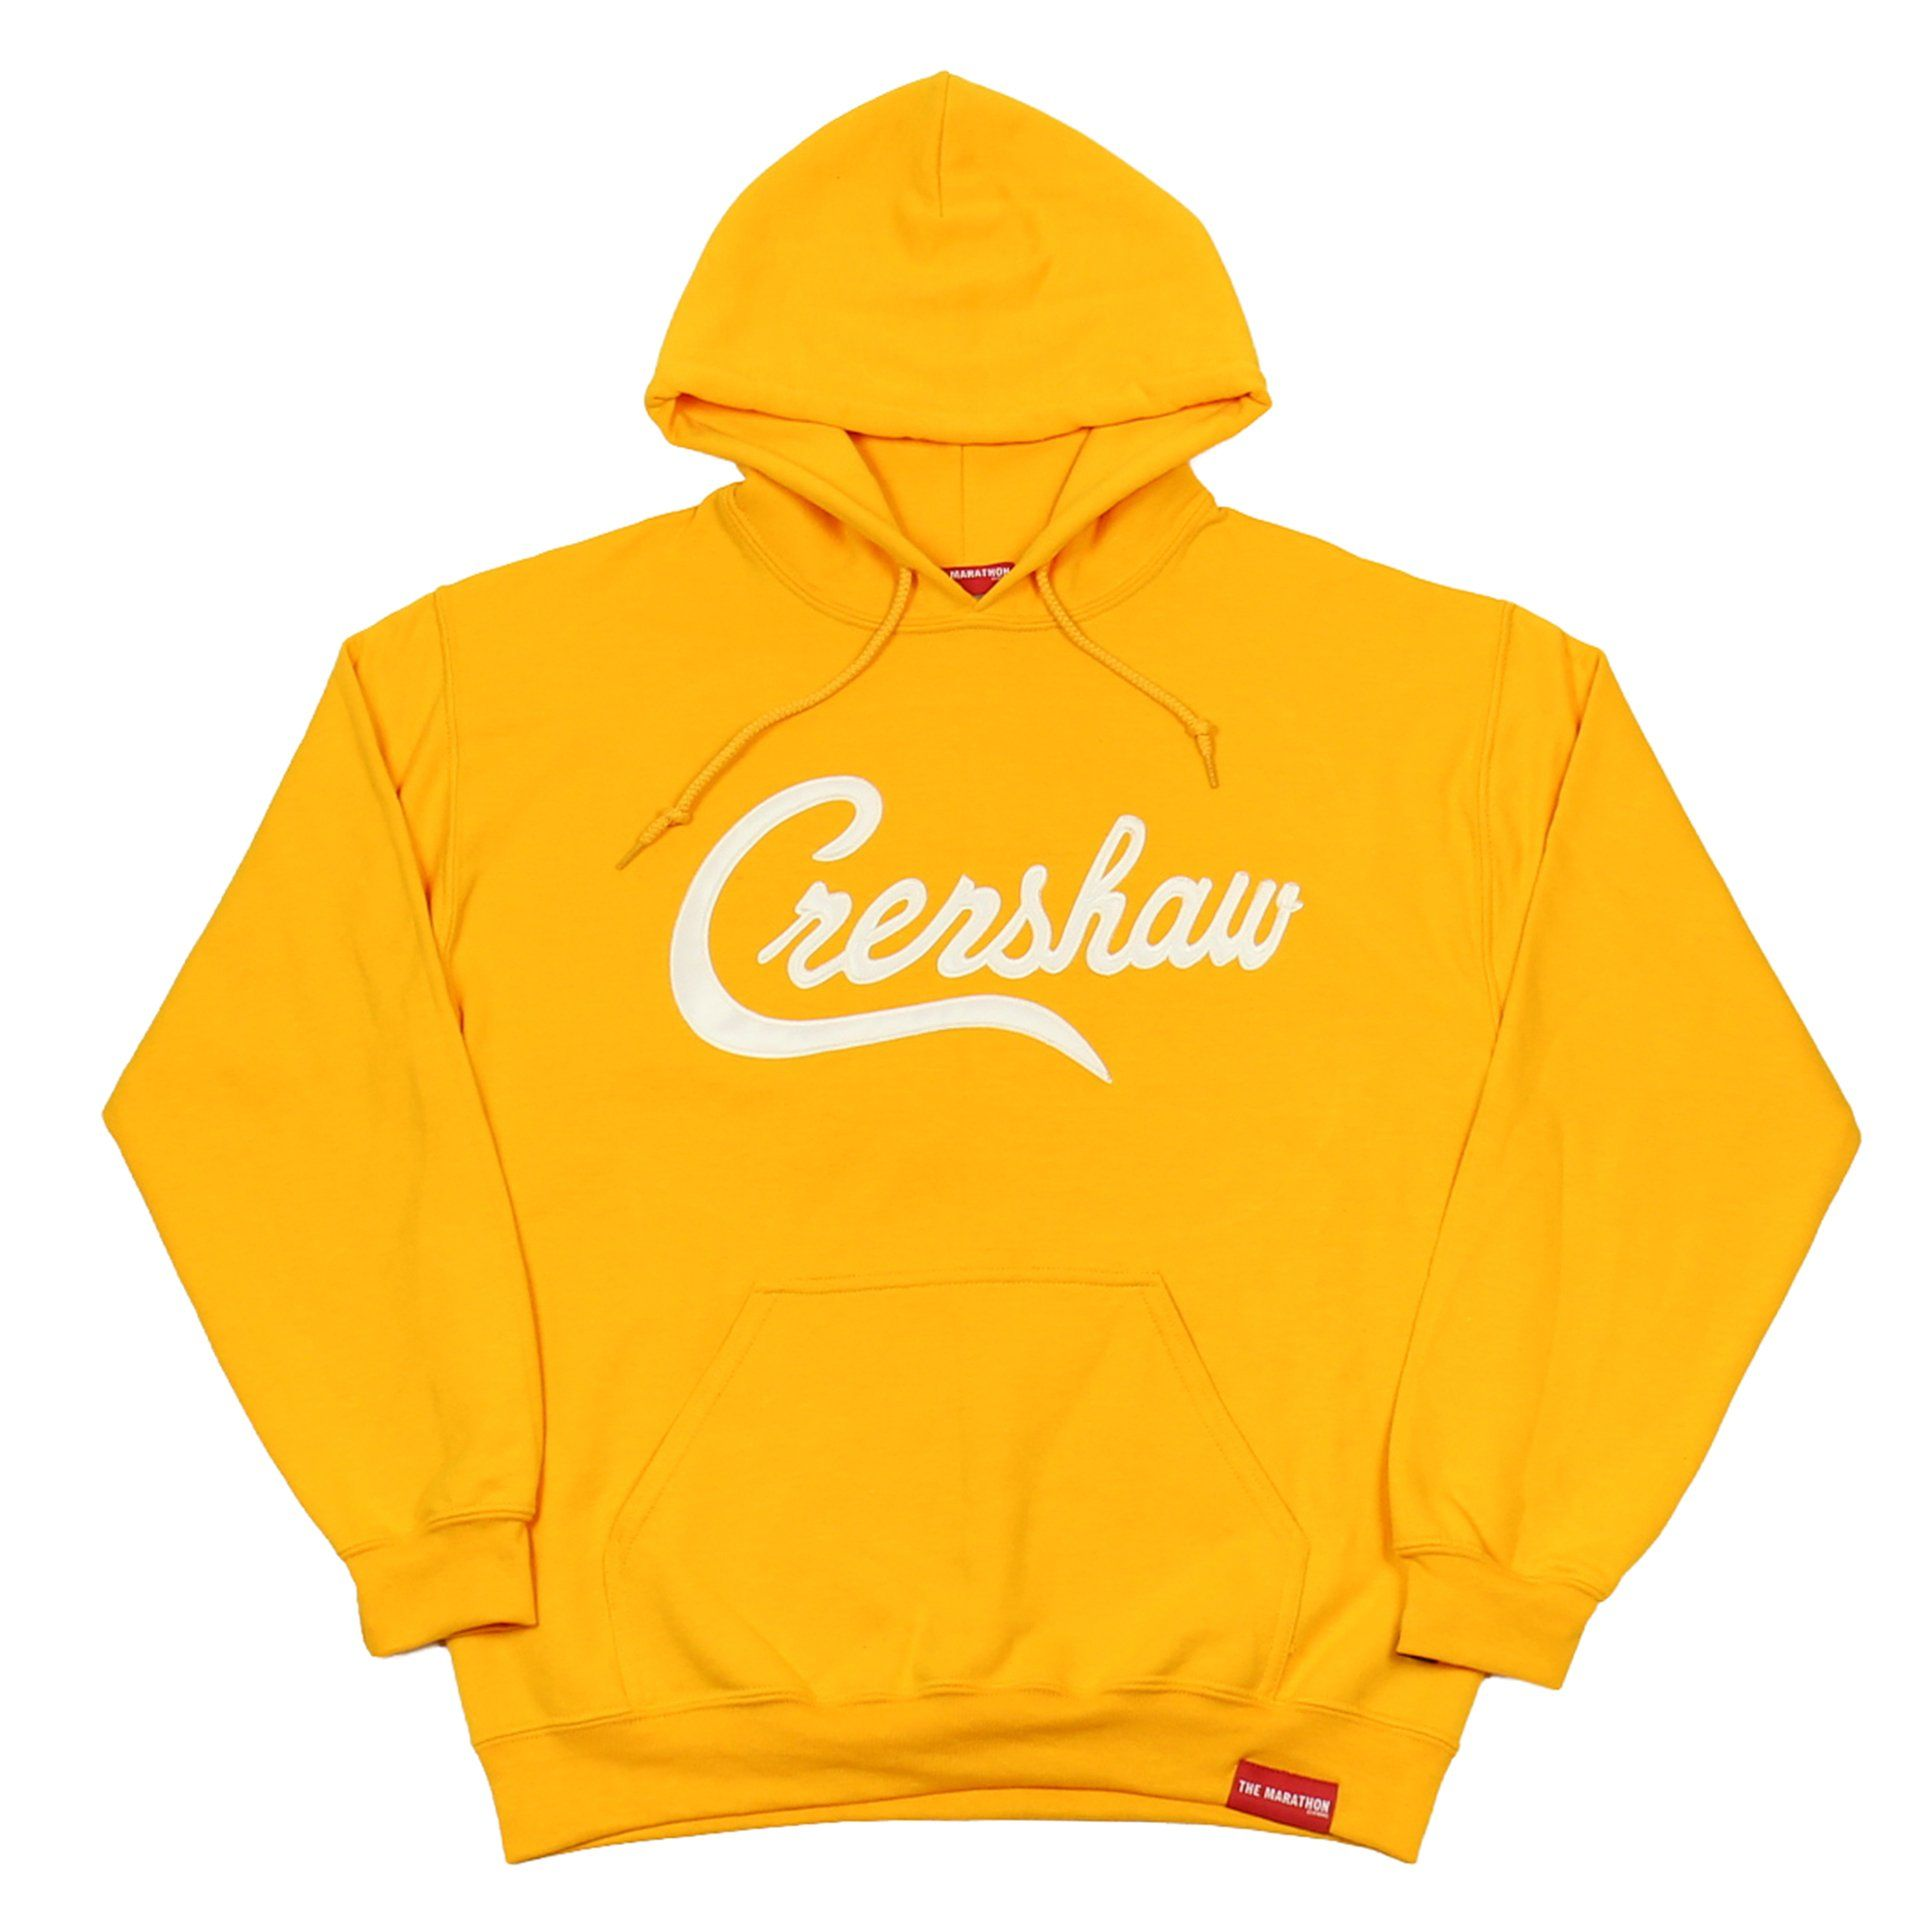 89be2c4a0 Crenshaw Hoodie - Gold/White – The Marathon Clothing | Black Owned ...